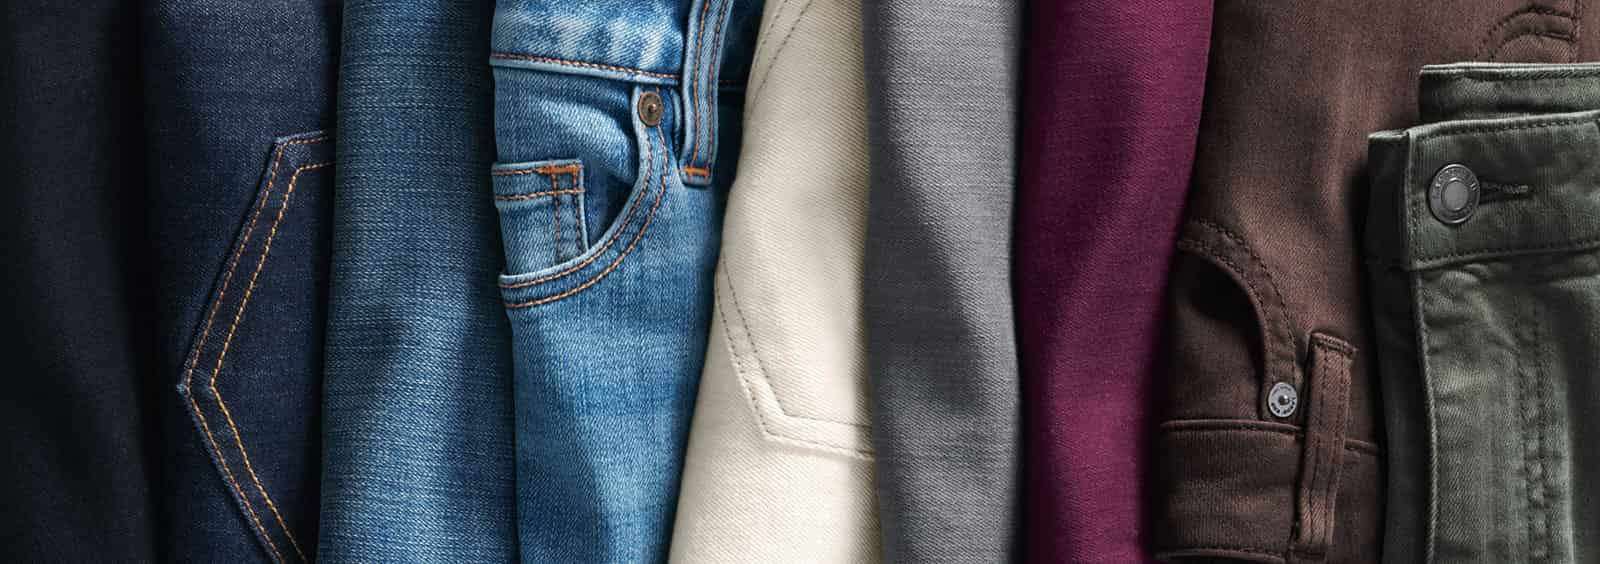 5 Best Skinny Jeans That Go with Any Comfy Sweater